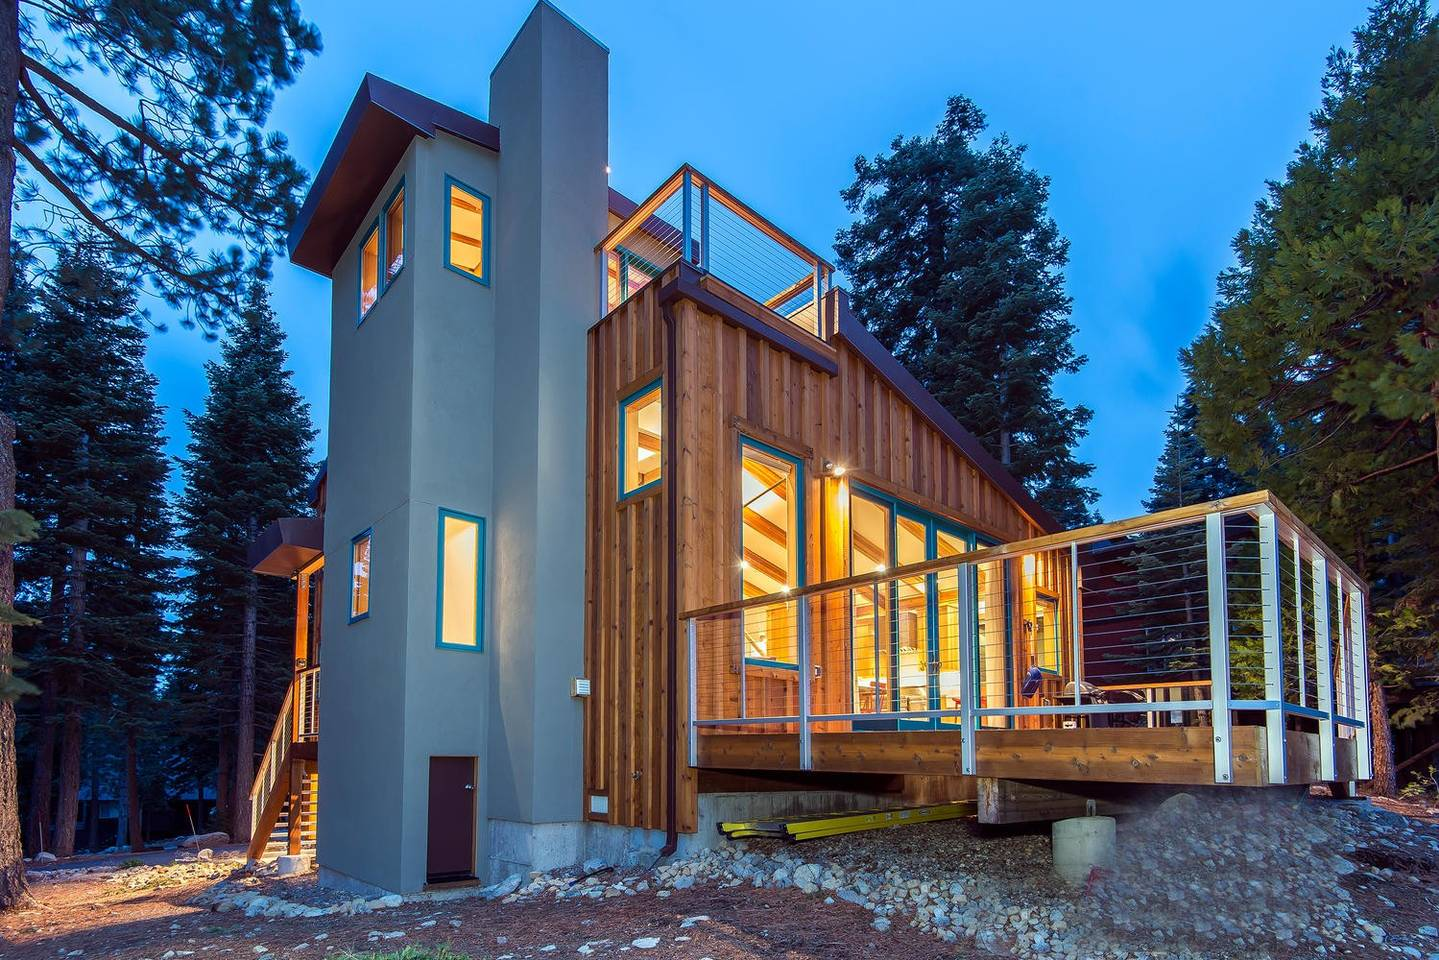 lake for tahoe search cabins fall vacation rentals south image in wildwood first ave rent spring property home discounts my large gallery